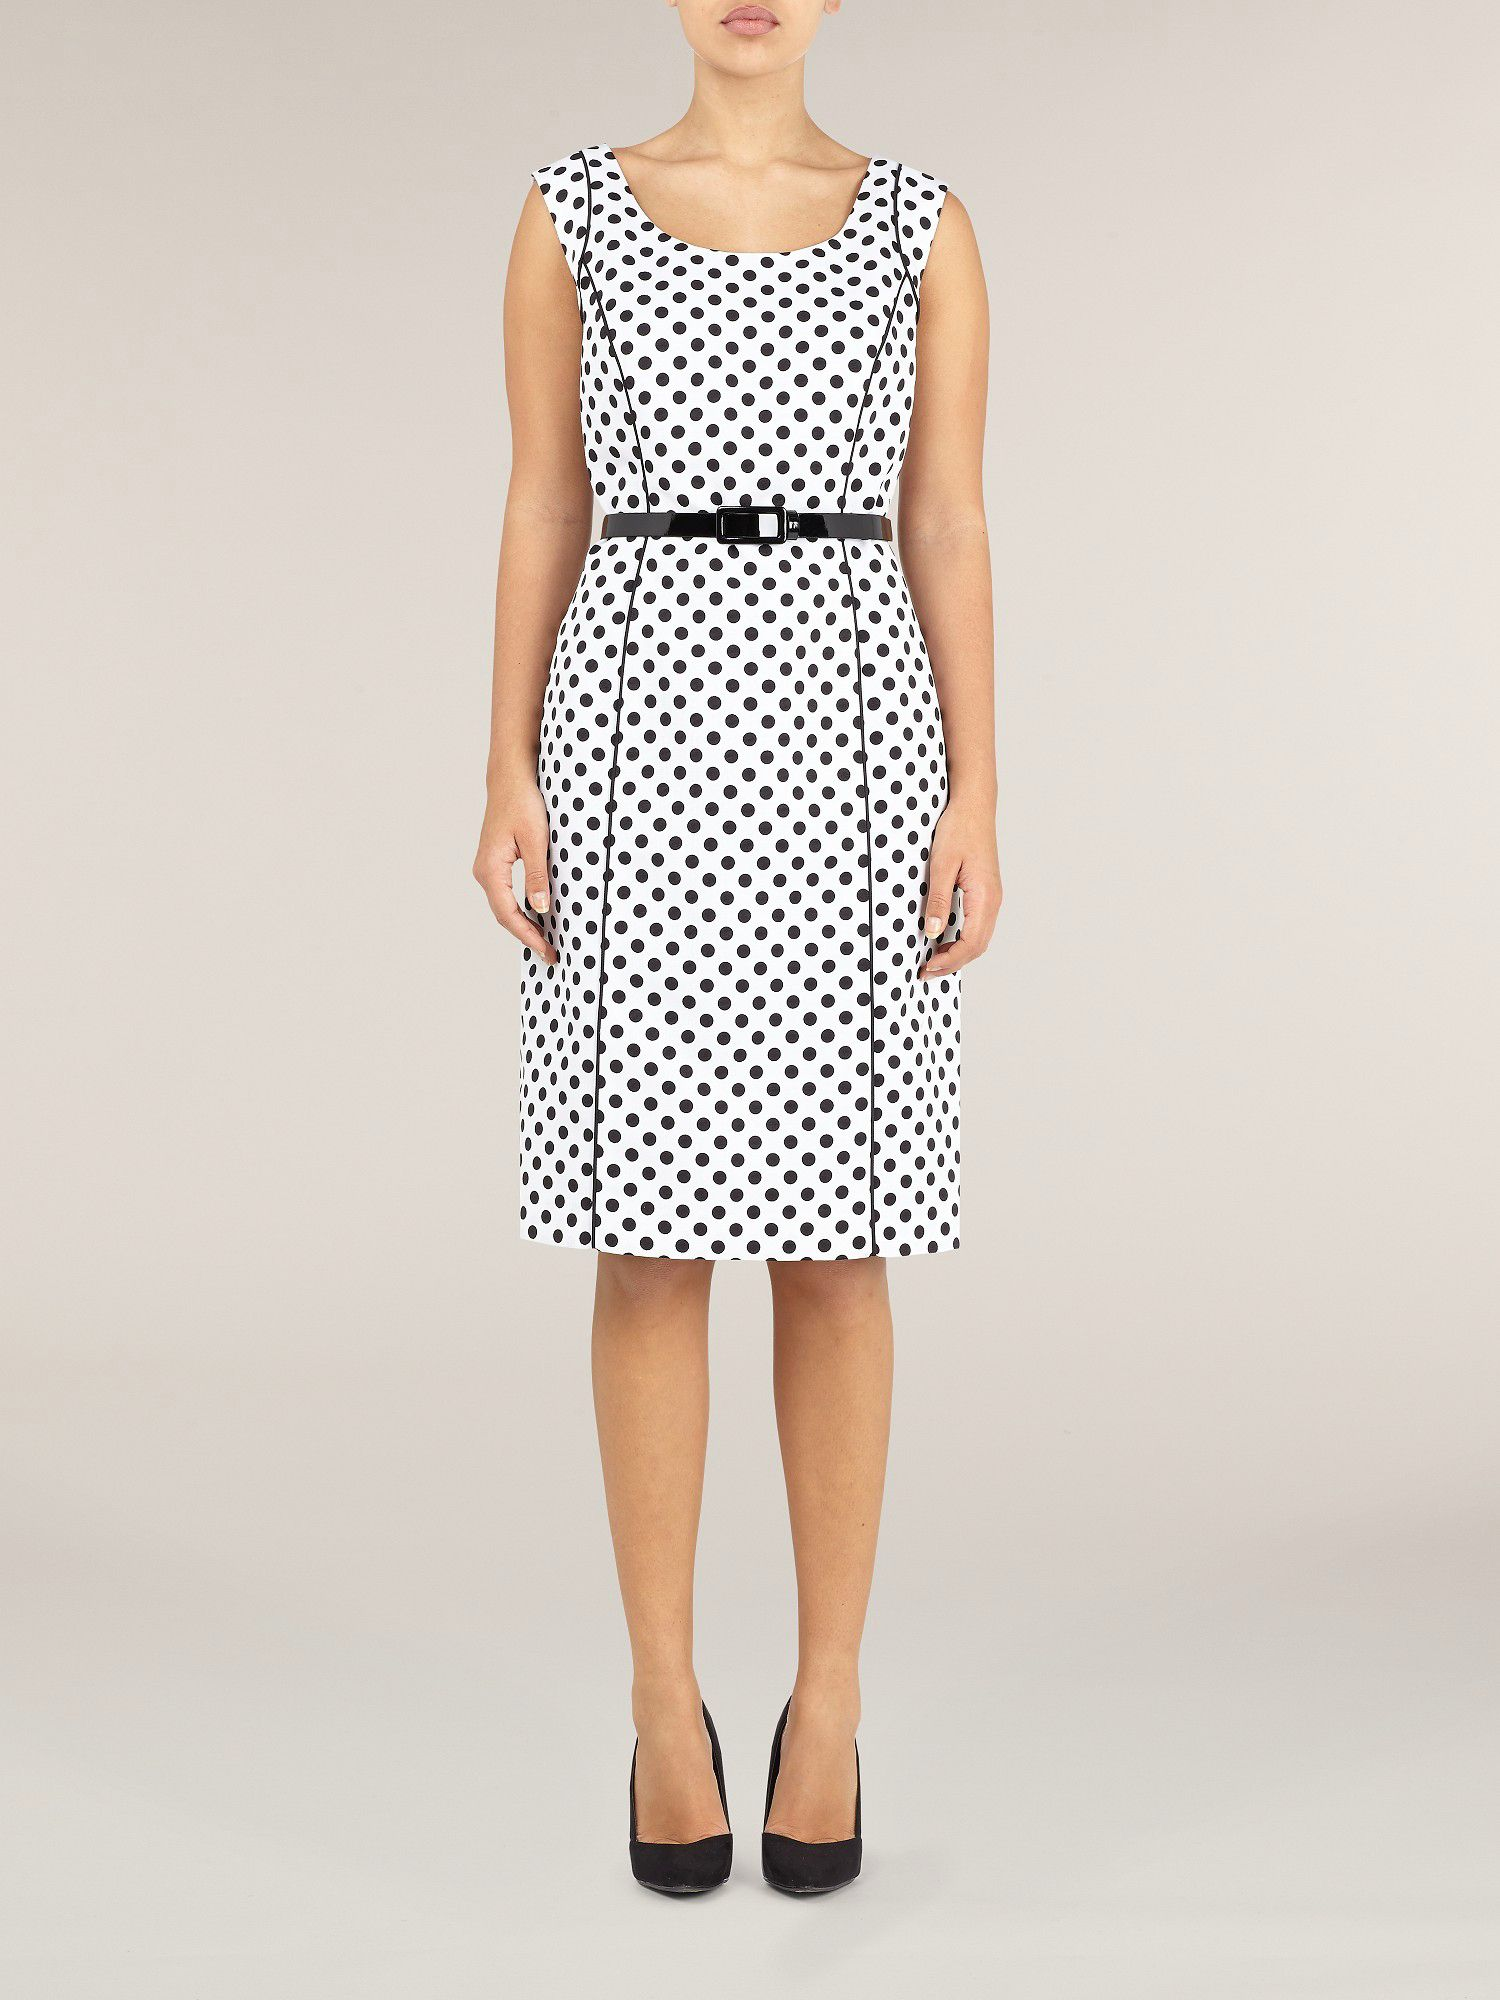 Ottoman polka dot shift dress